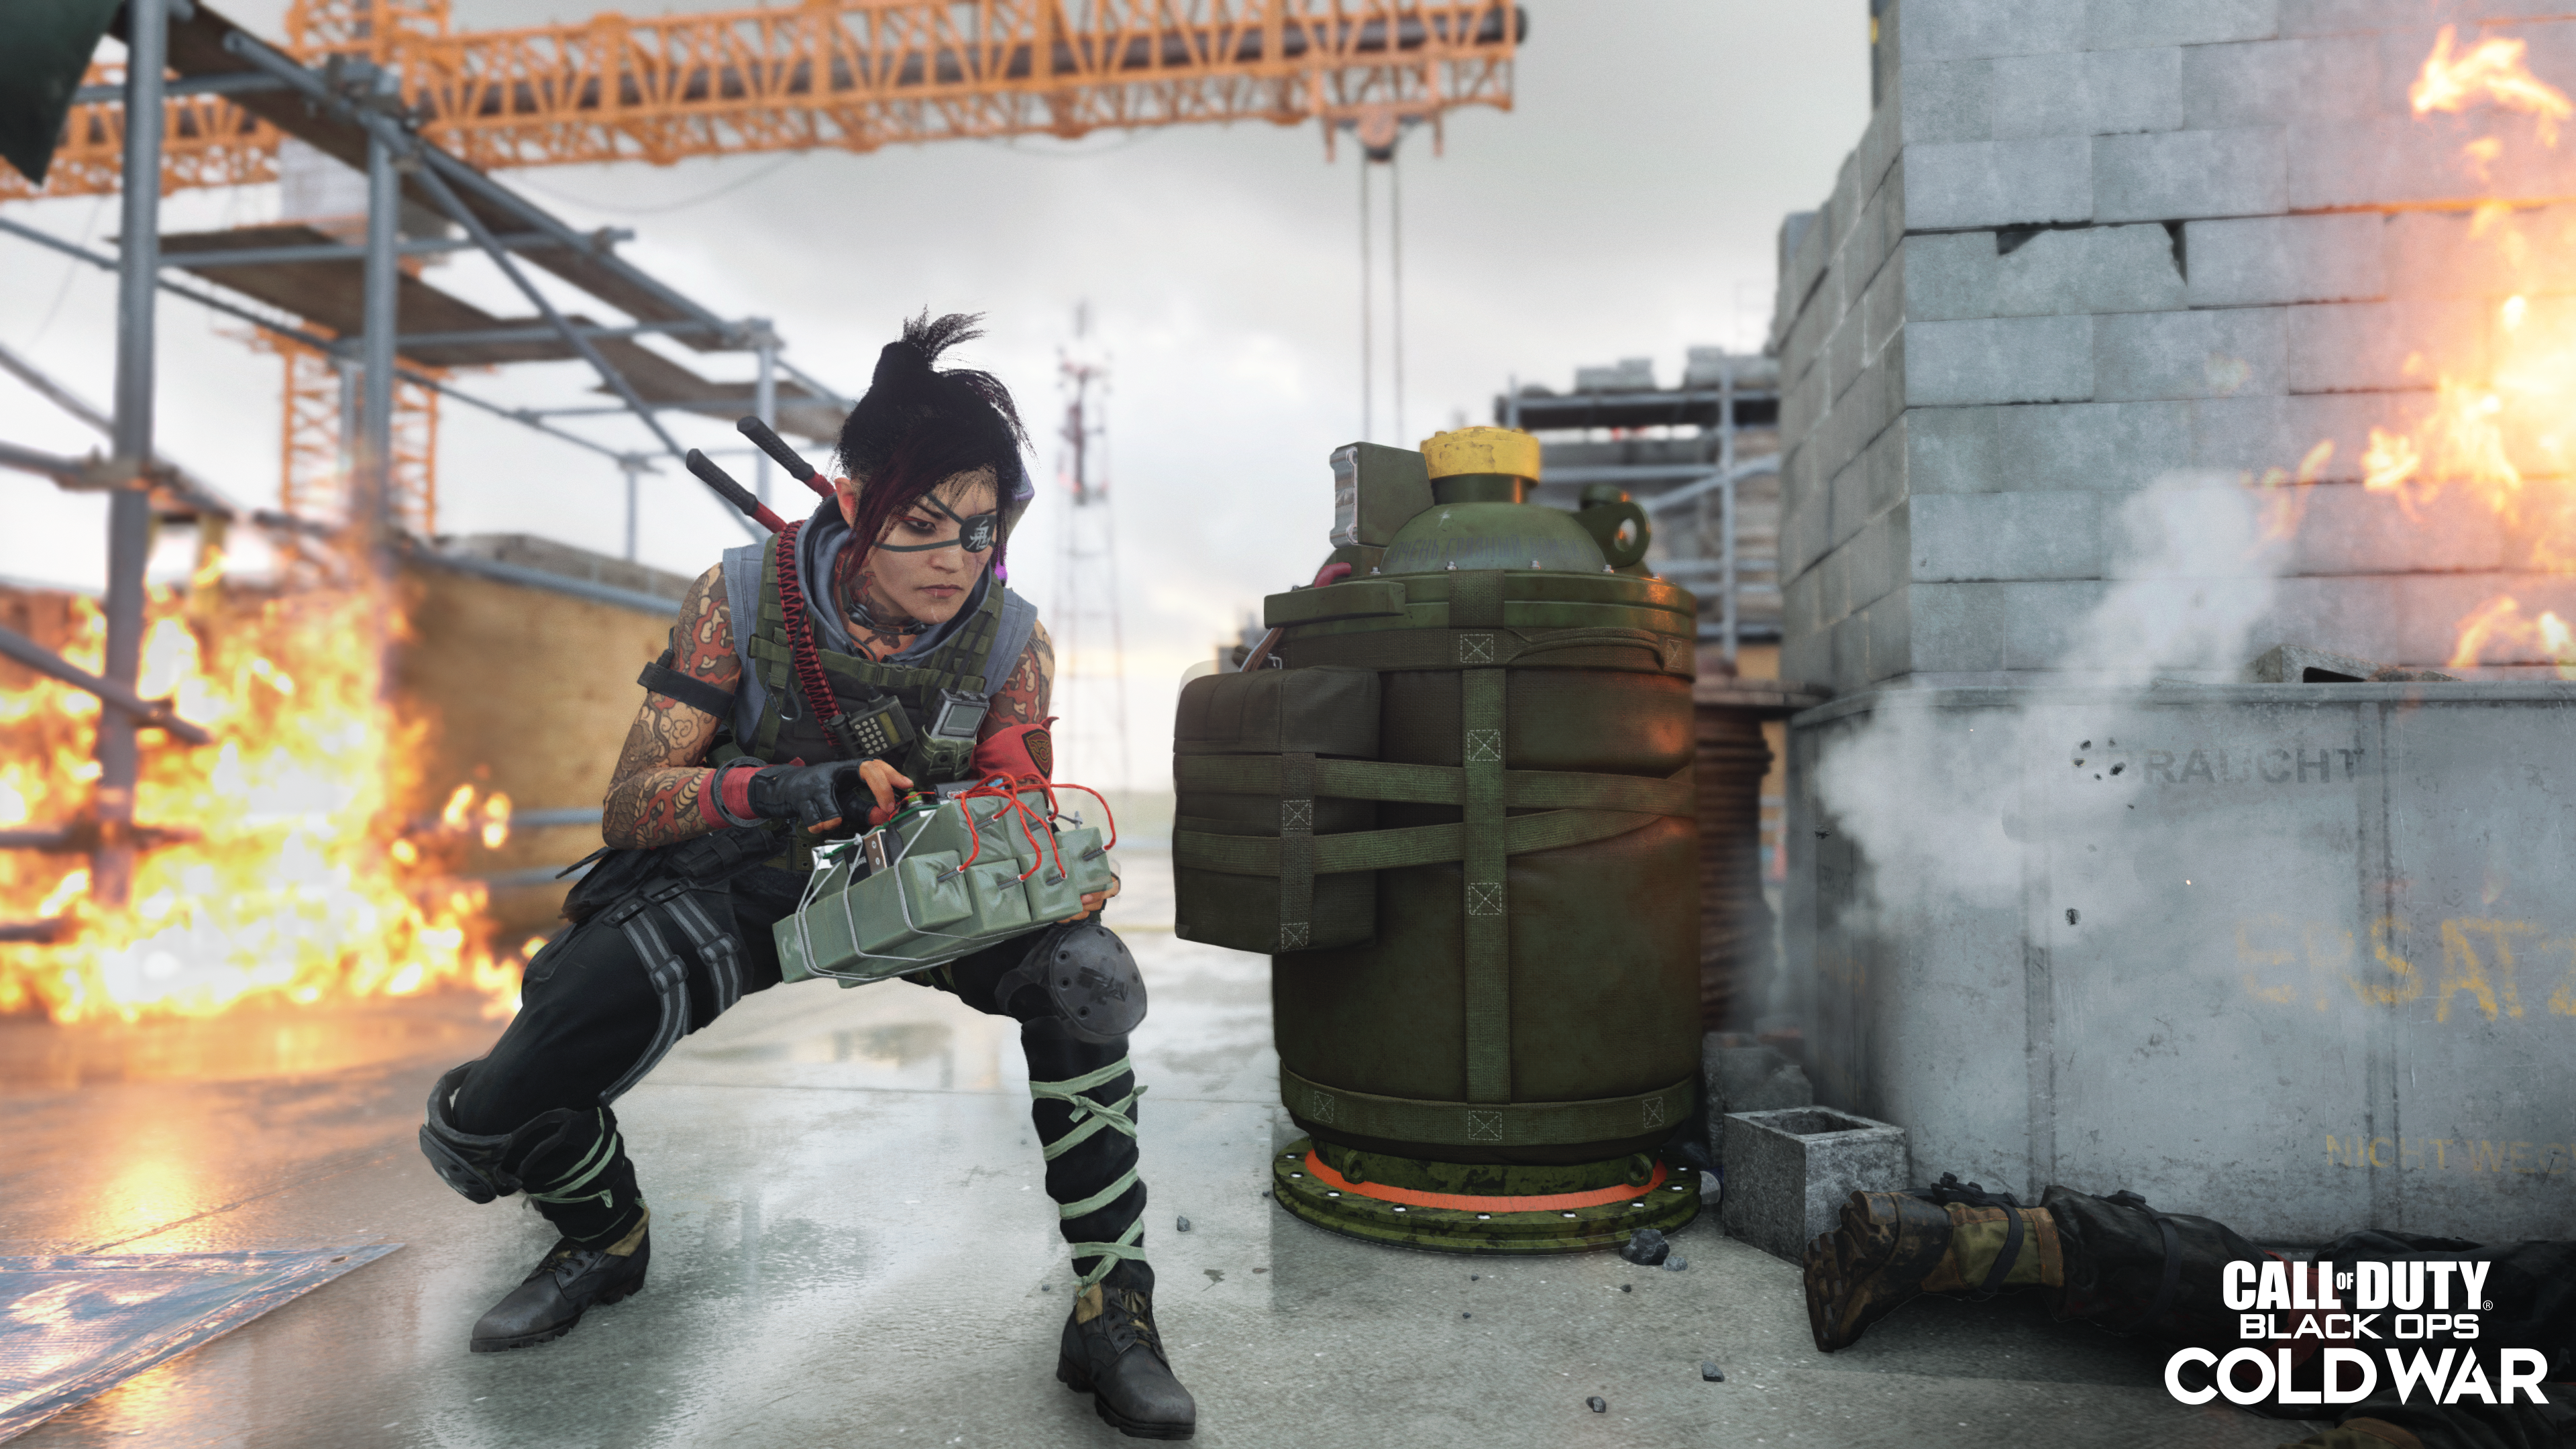 Call of Duty: Black Ops Cold War's Kitsune Operator in the Double Agent game mode